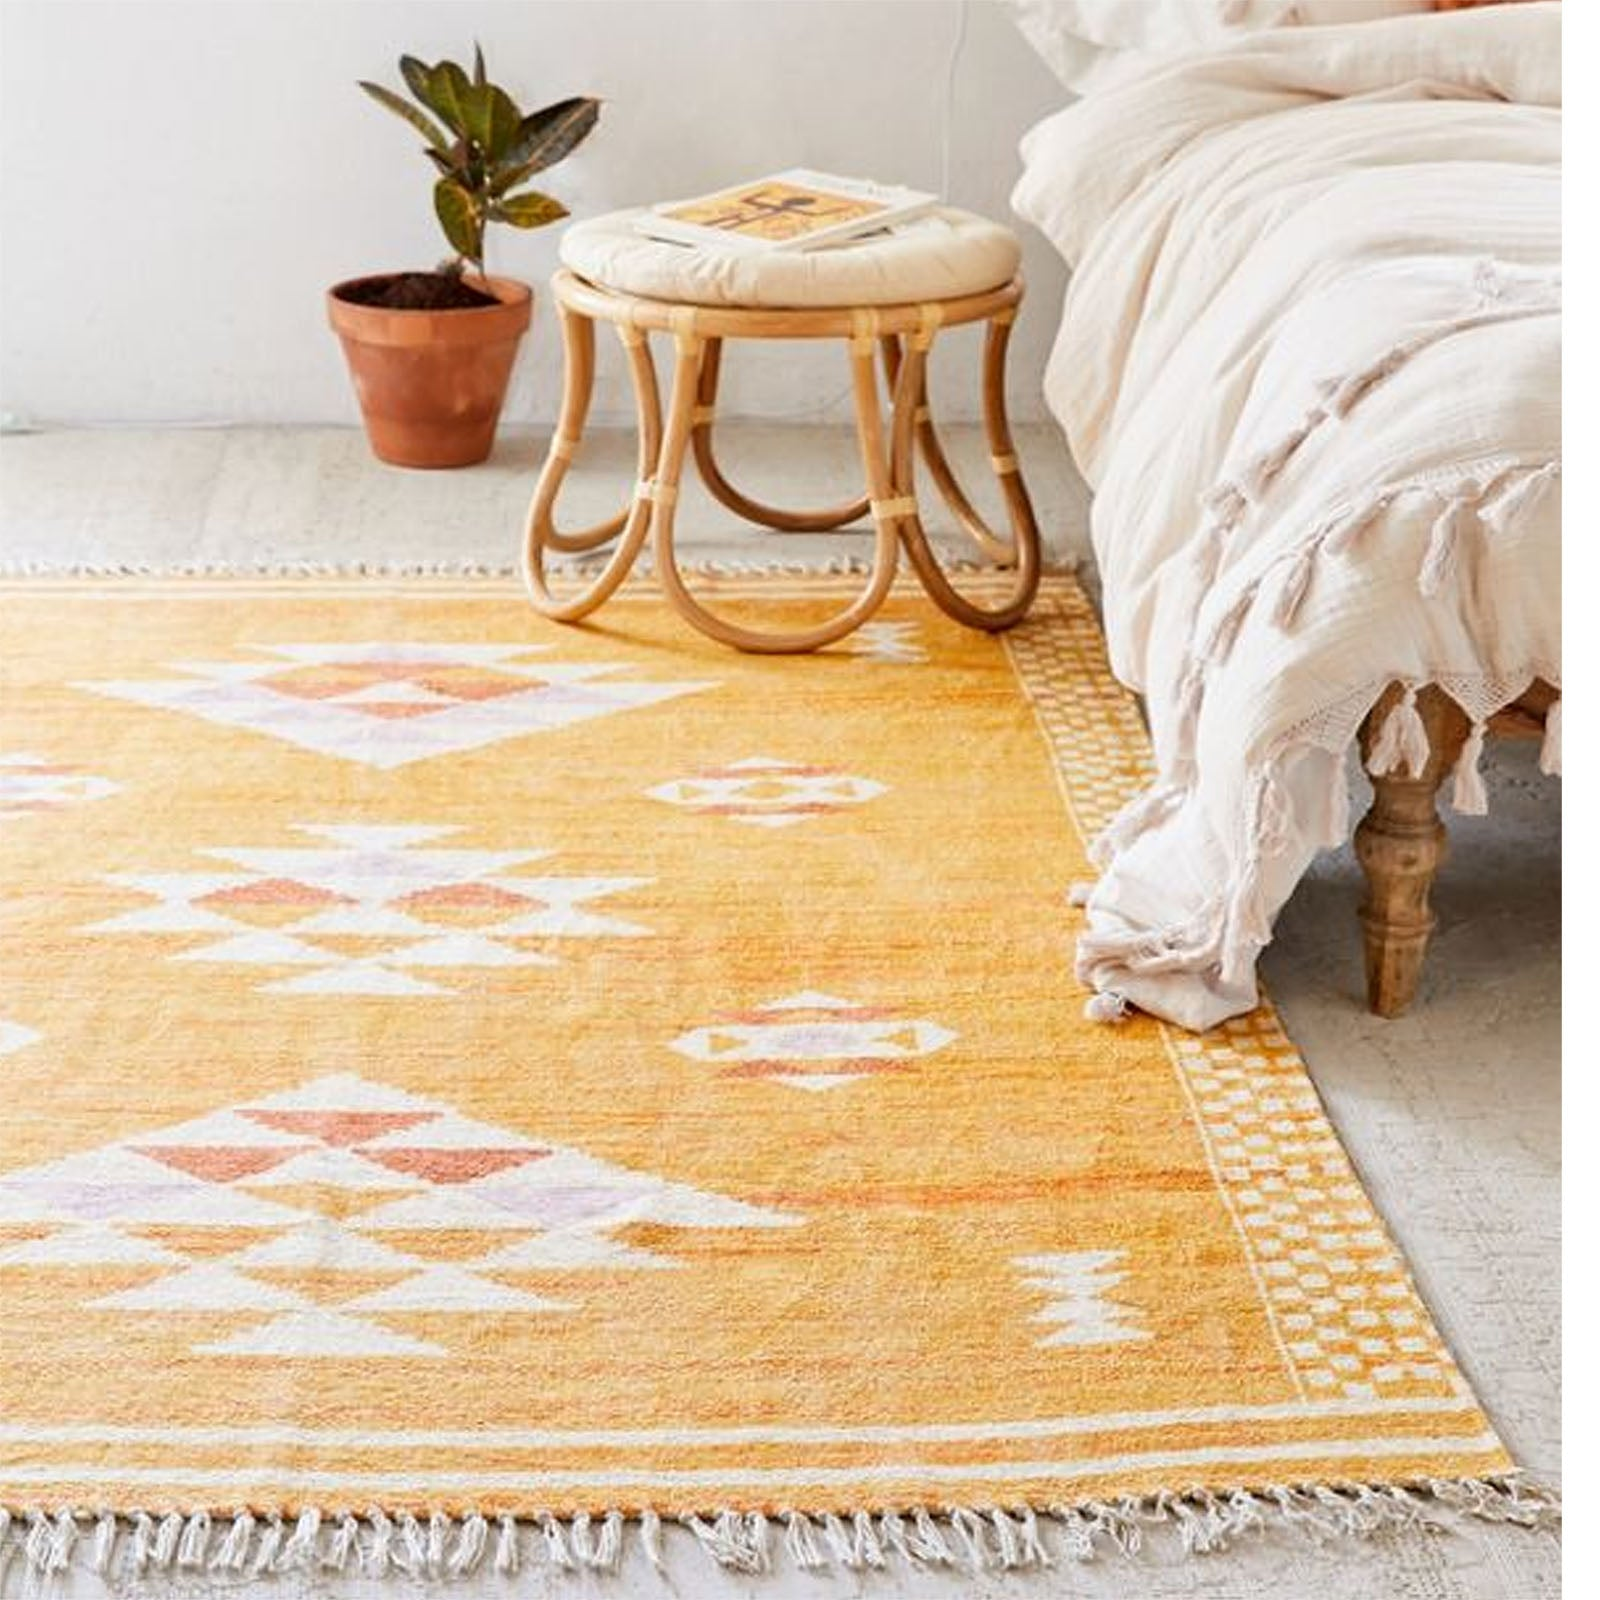 230X160  handmade  Rug JH-2705-L -  230X160 سجادة يدوية الصنع - Shop Online Furniture and Home Decor Store in Dubai, UAE at ebarza